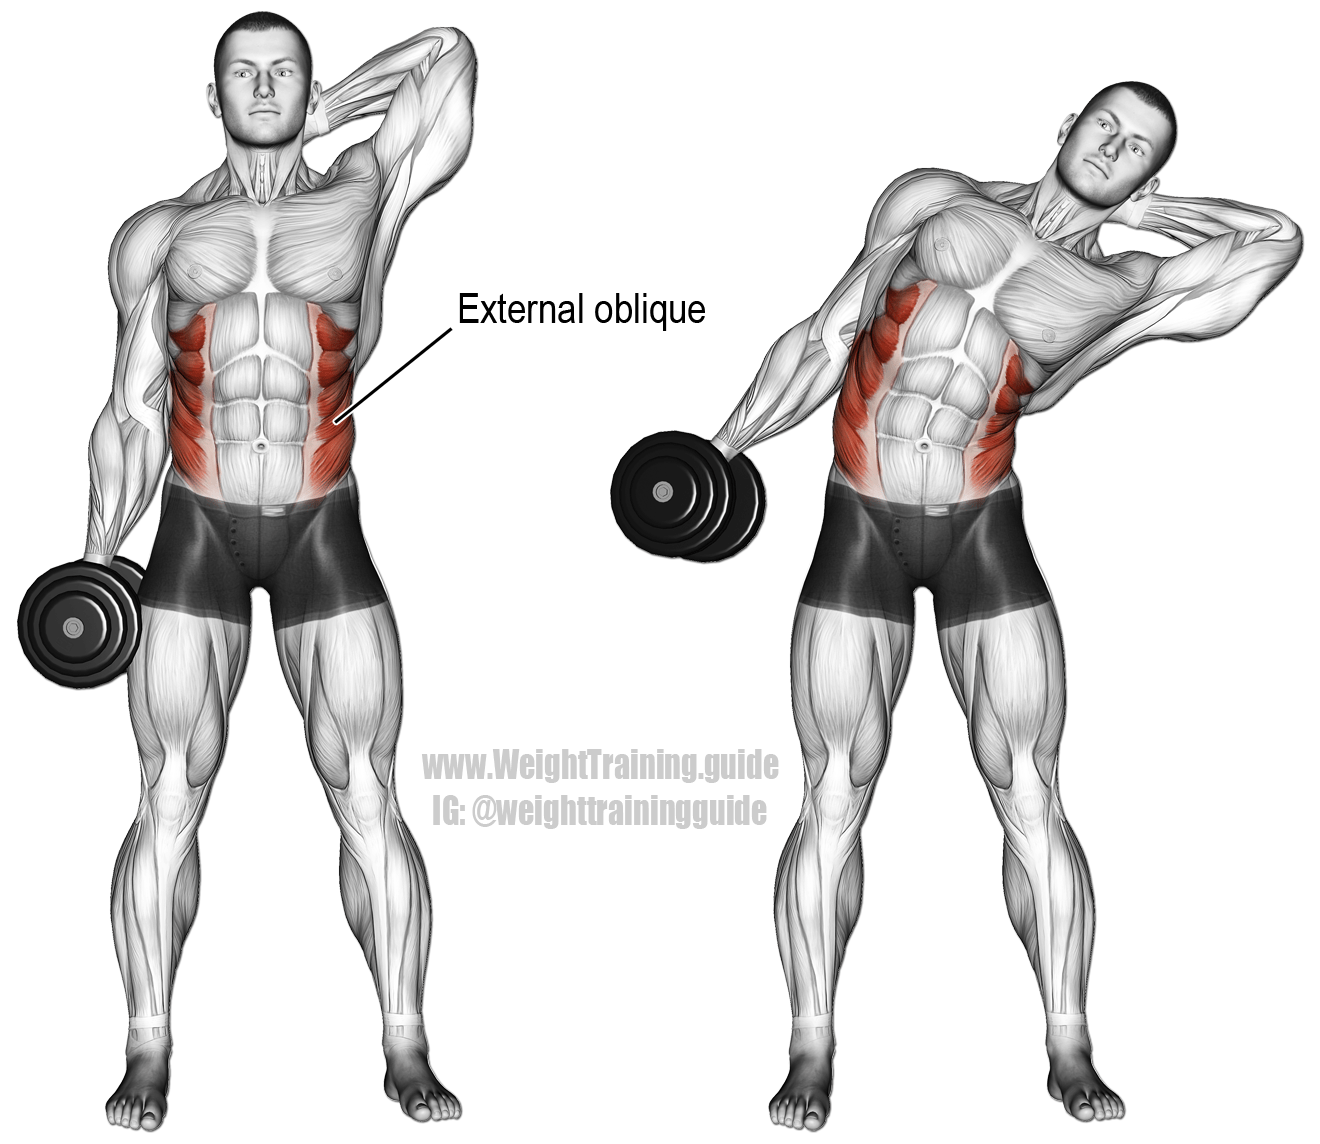 Dumbbell side bend. An isolation exercise. Target muscles